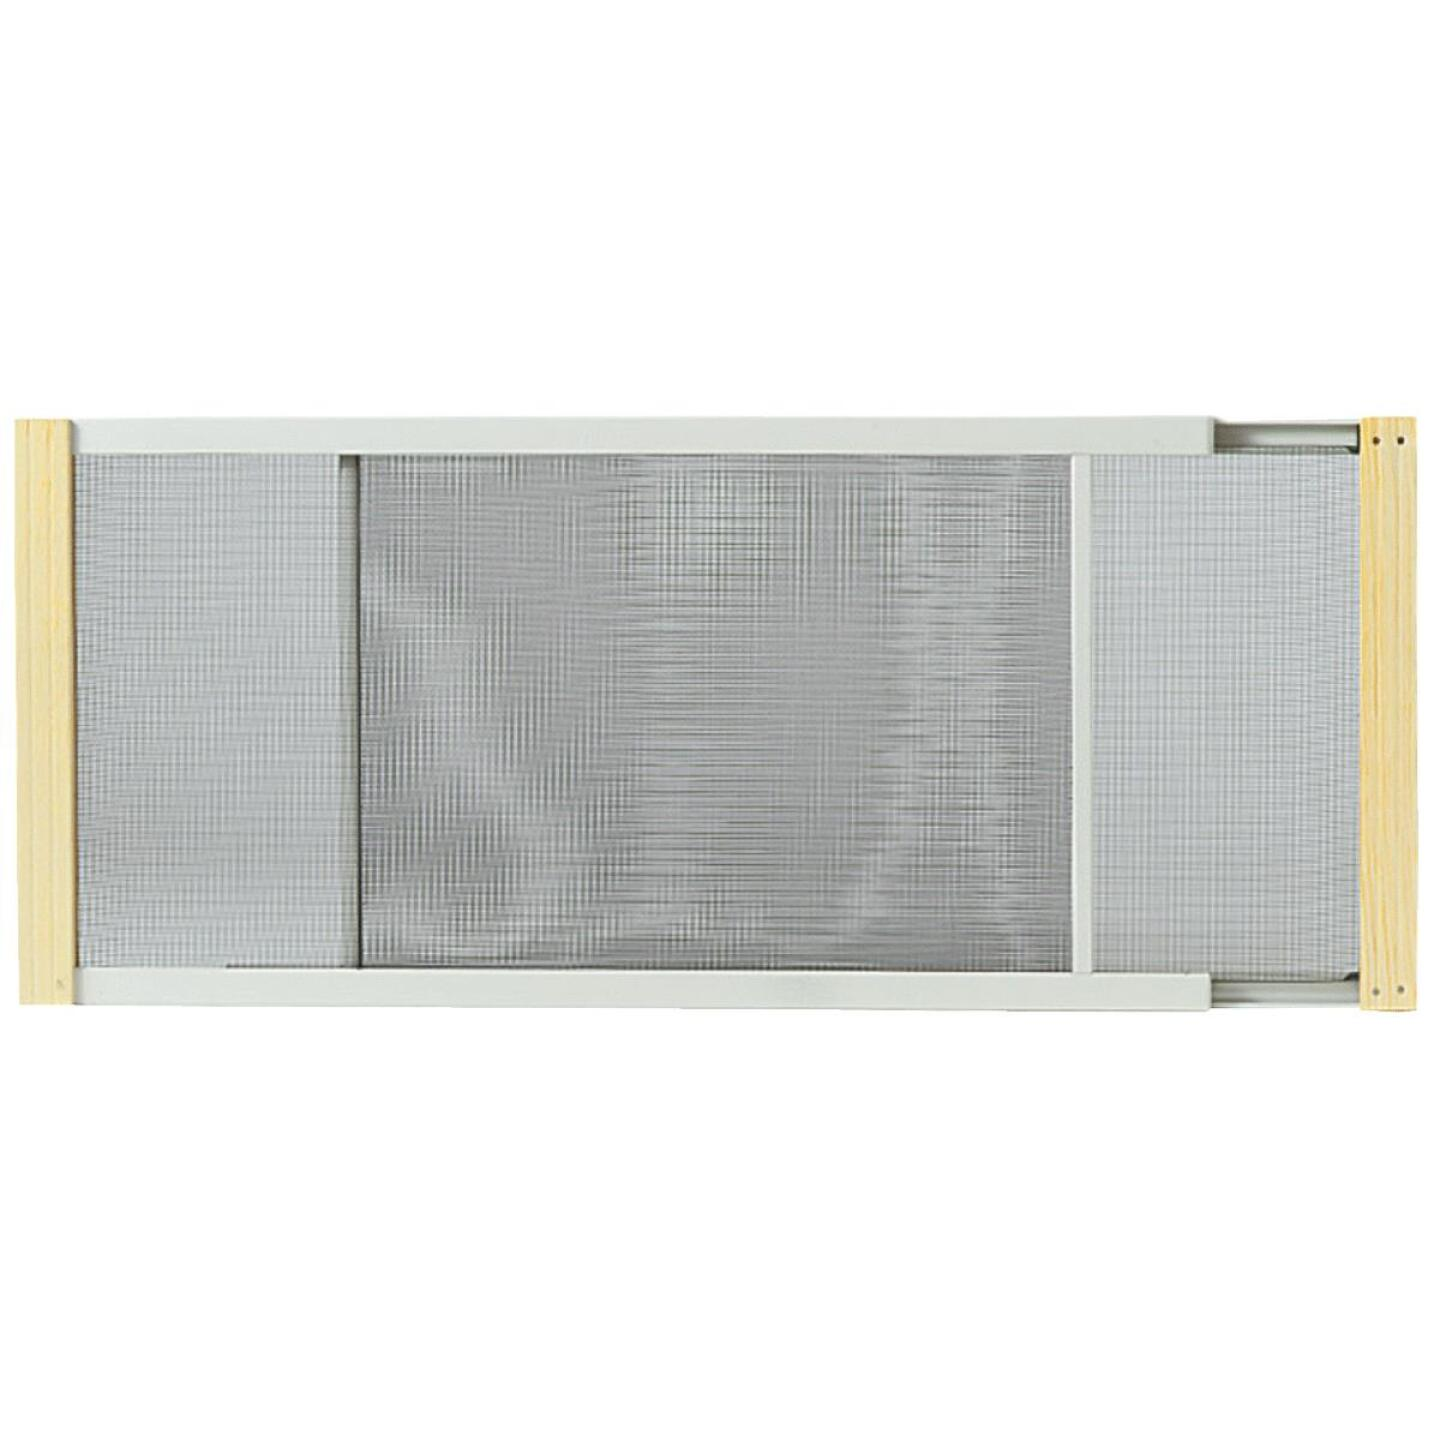 W.B. Marvin 10 In. x 21-37 in. Adjustable Window Screens by Frost King Image 2